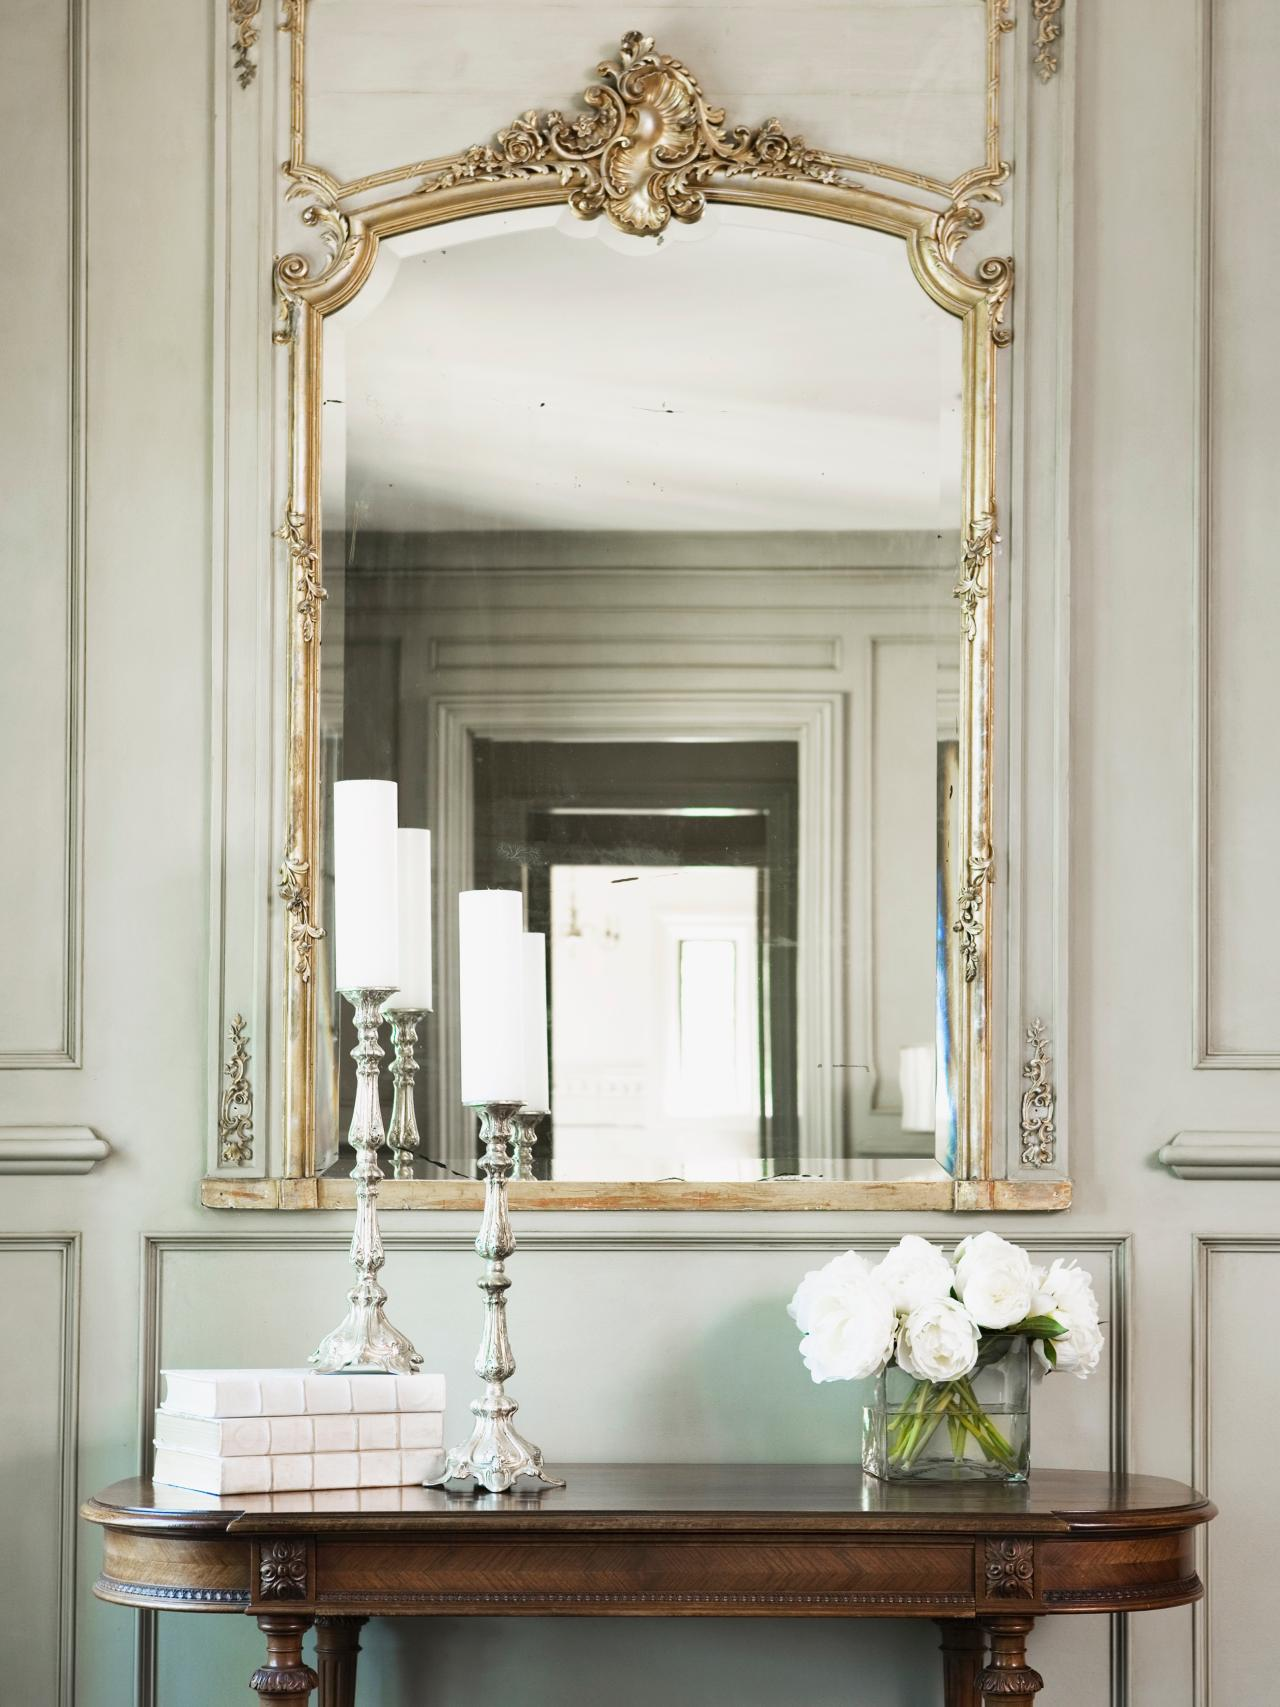 photos-hgtv-antique-table-and-gilt-mirror-in-neutral-hallway_decorative-hallway-mirrors_home-decor_home-decorators-coupon-code-decor-stores-yosemite-bohemian-western-christian-target-sincere-office-de